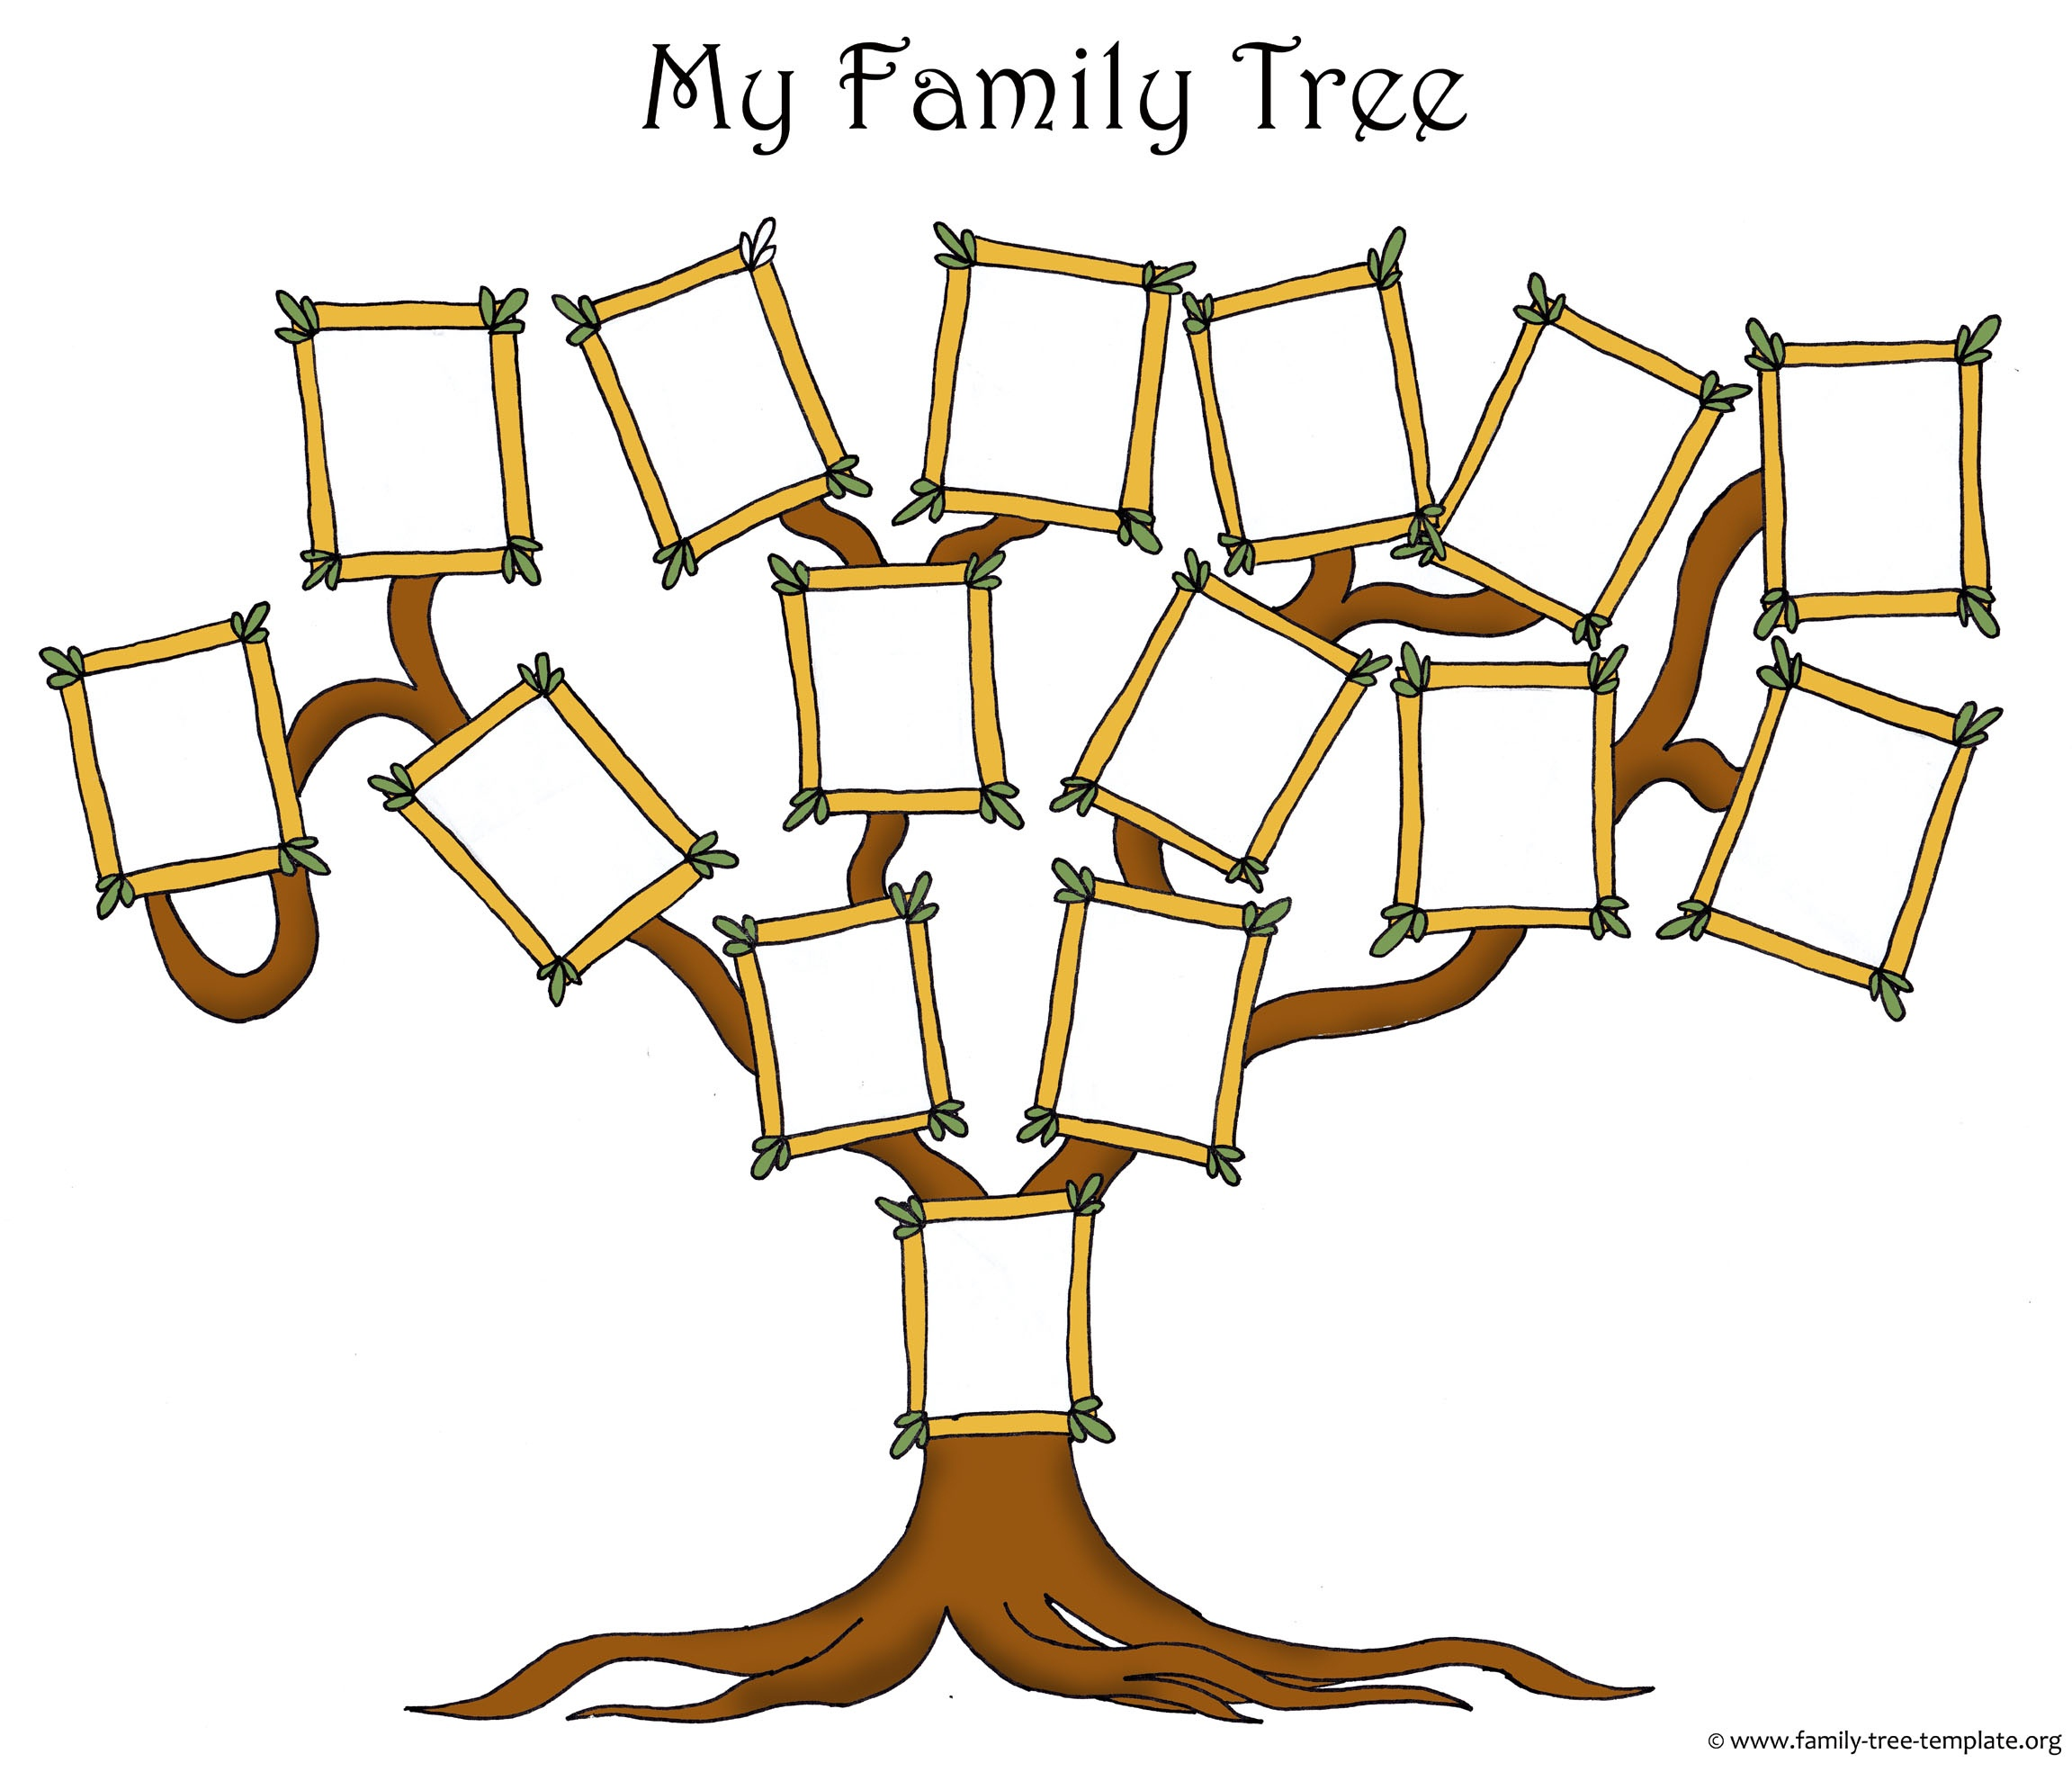 Free Family Tree Template Designs For Making Ancestry Charts - Free Printable Family Tree